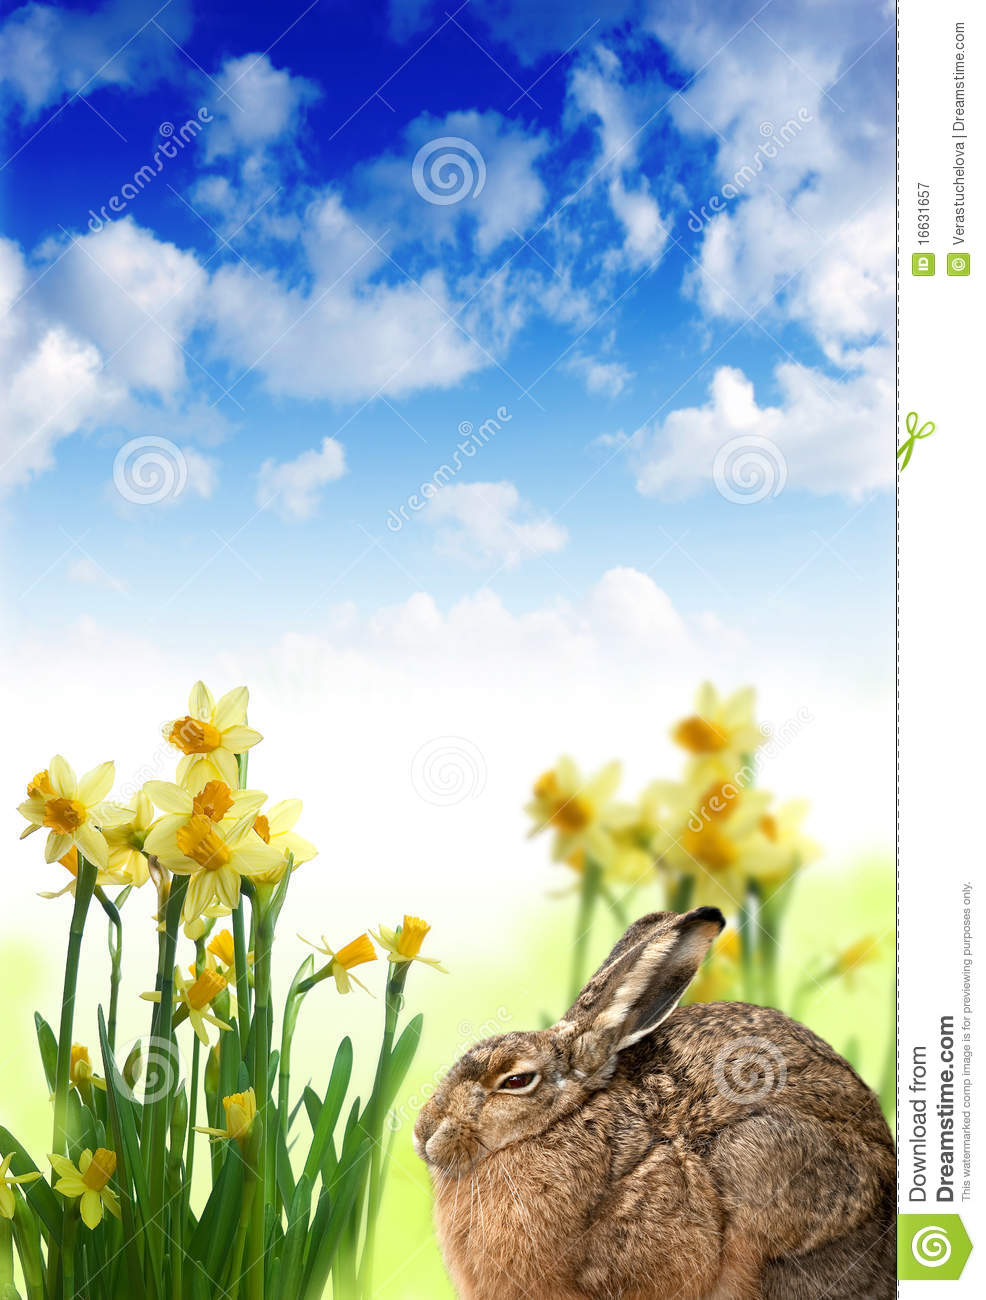 Download Easter hare and daffodils stock image. Image of common - 16631657